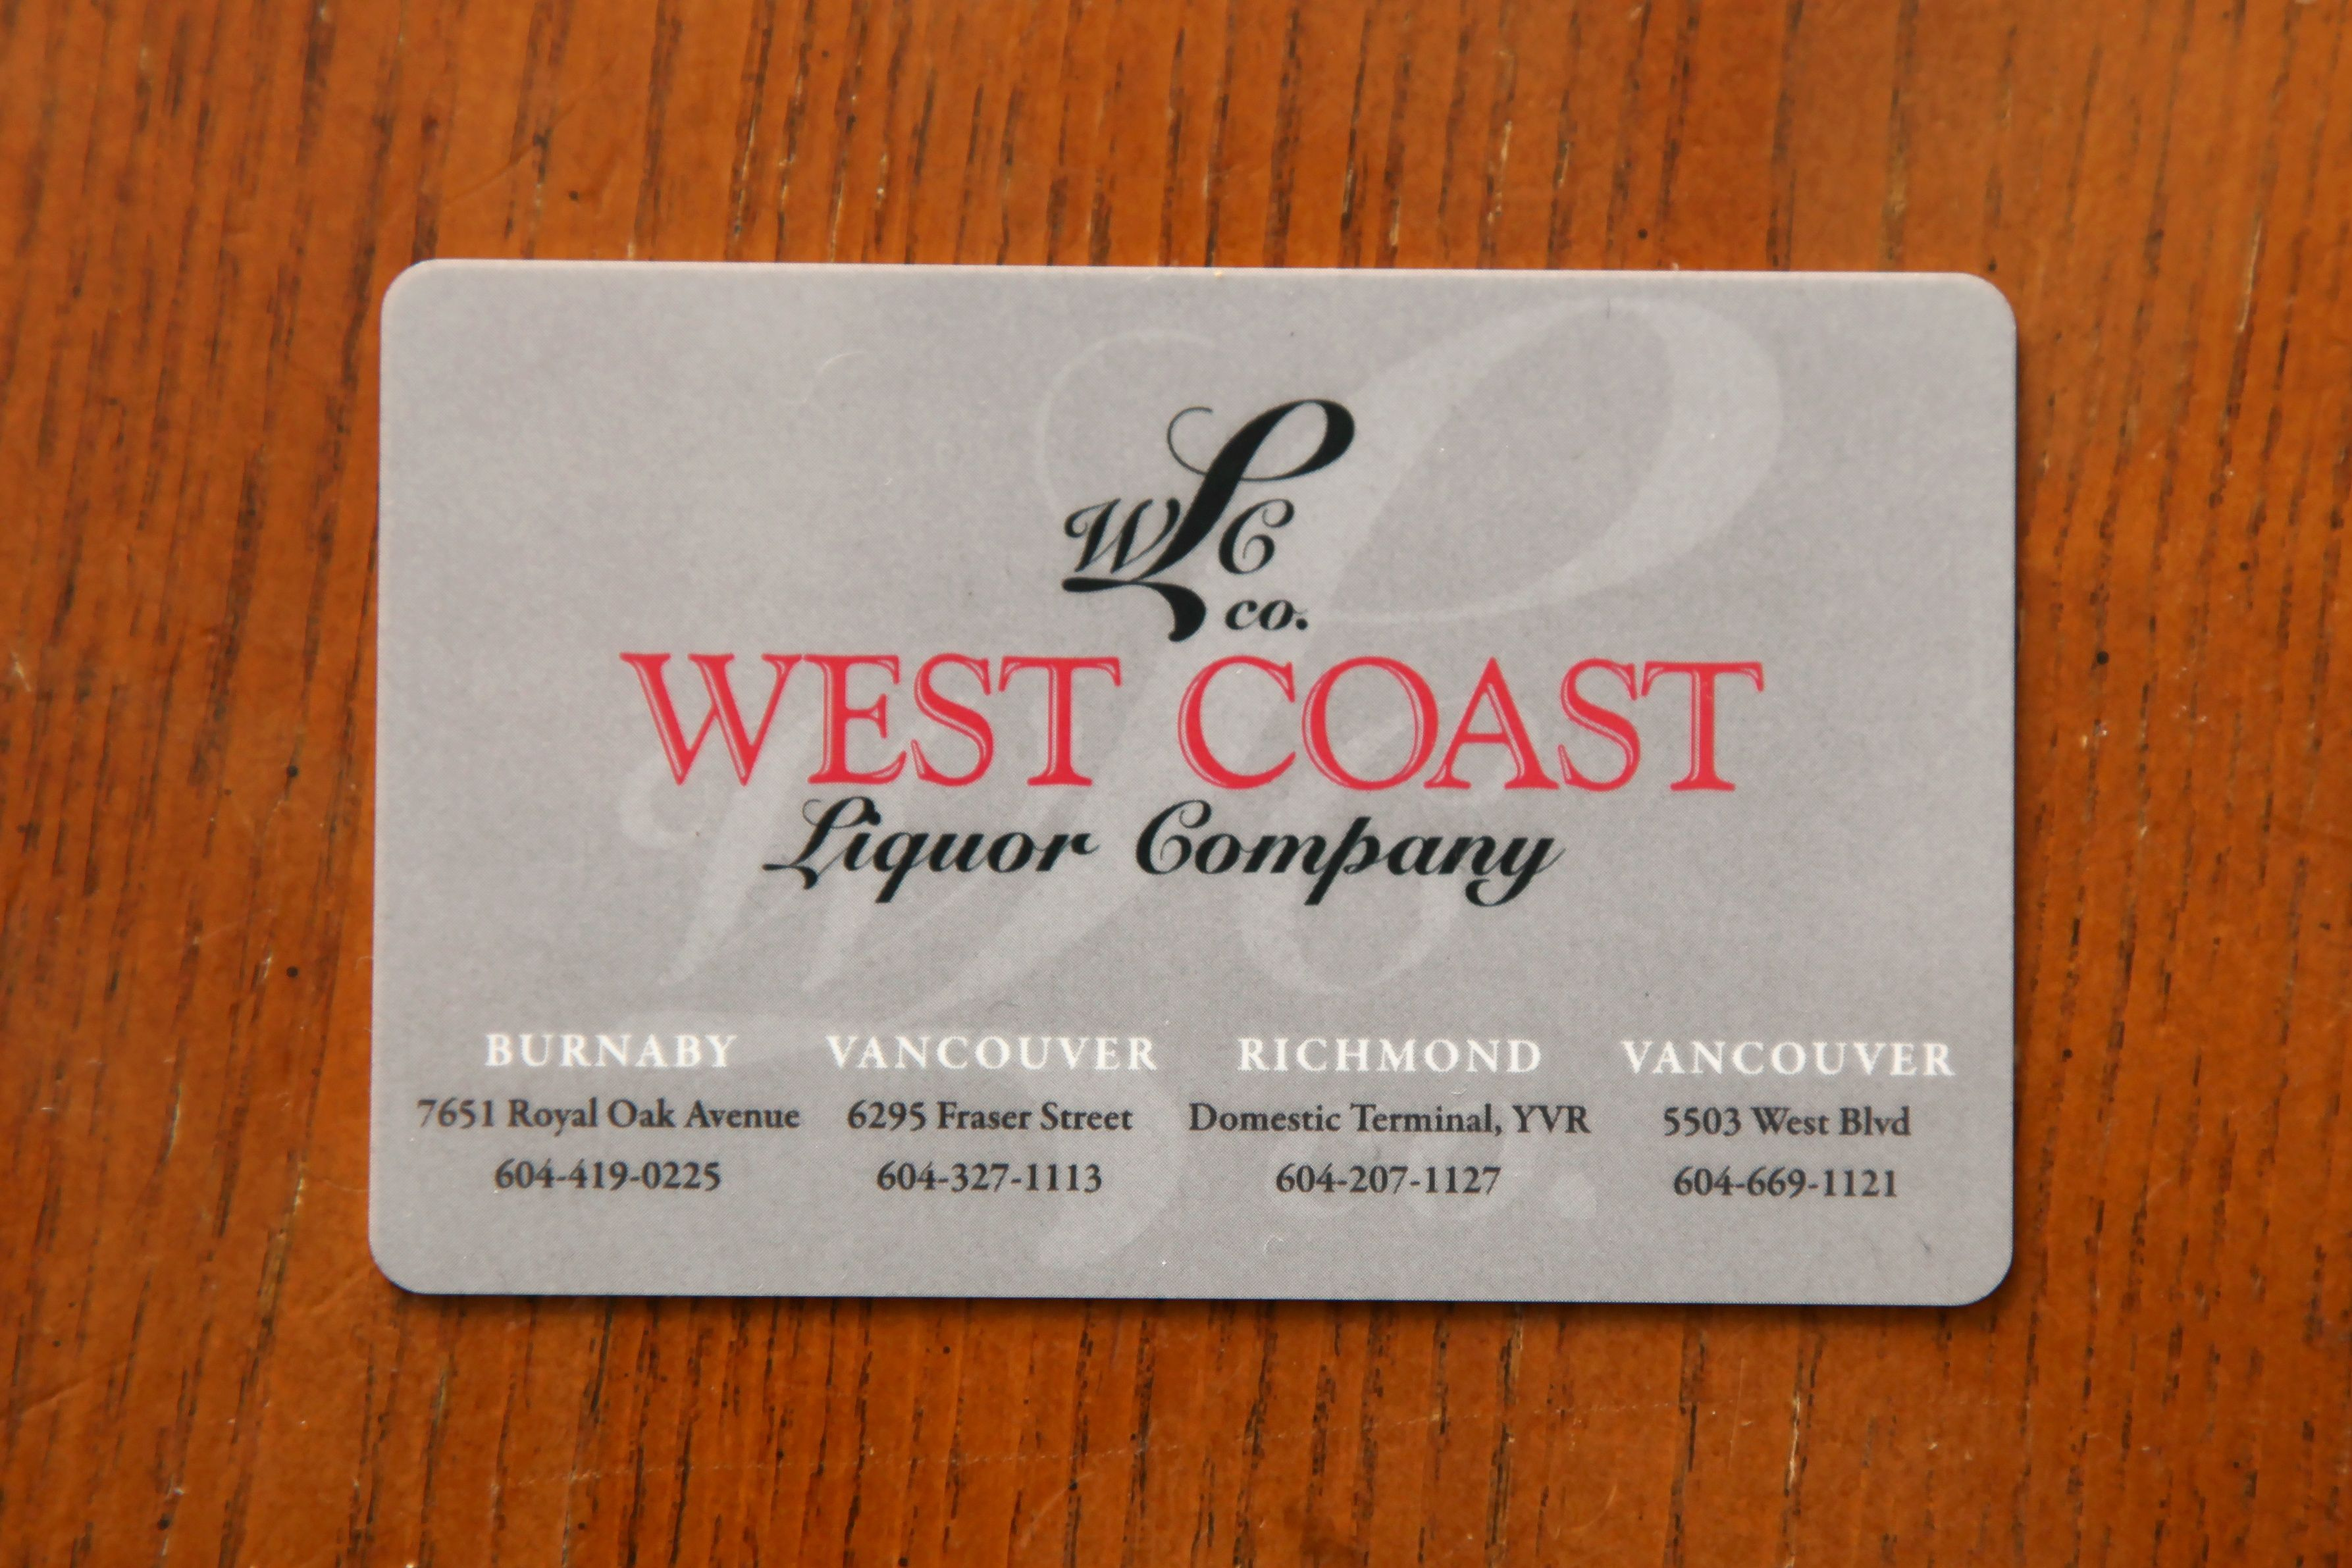 Give someone a reloadable gift card from West Coast Liquor Company ...